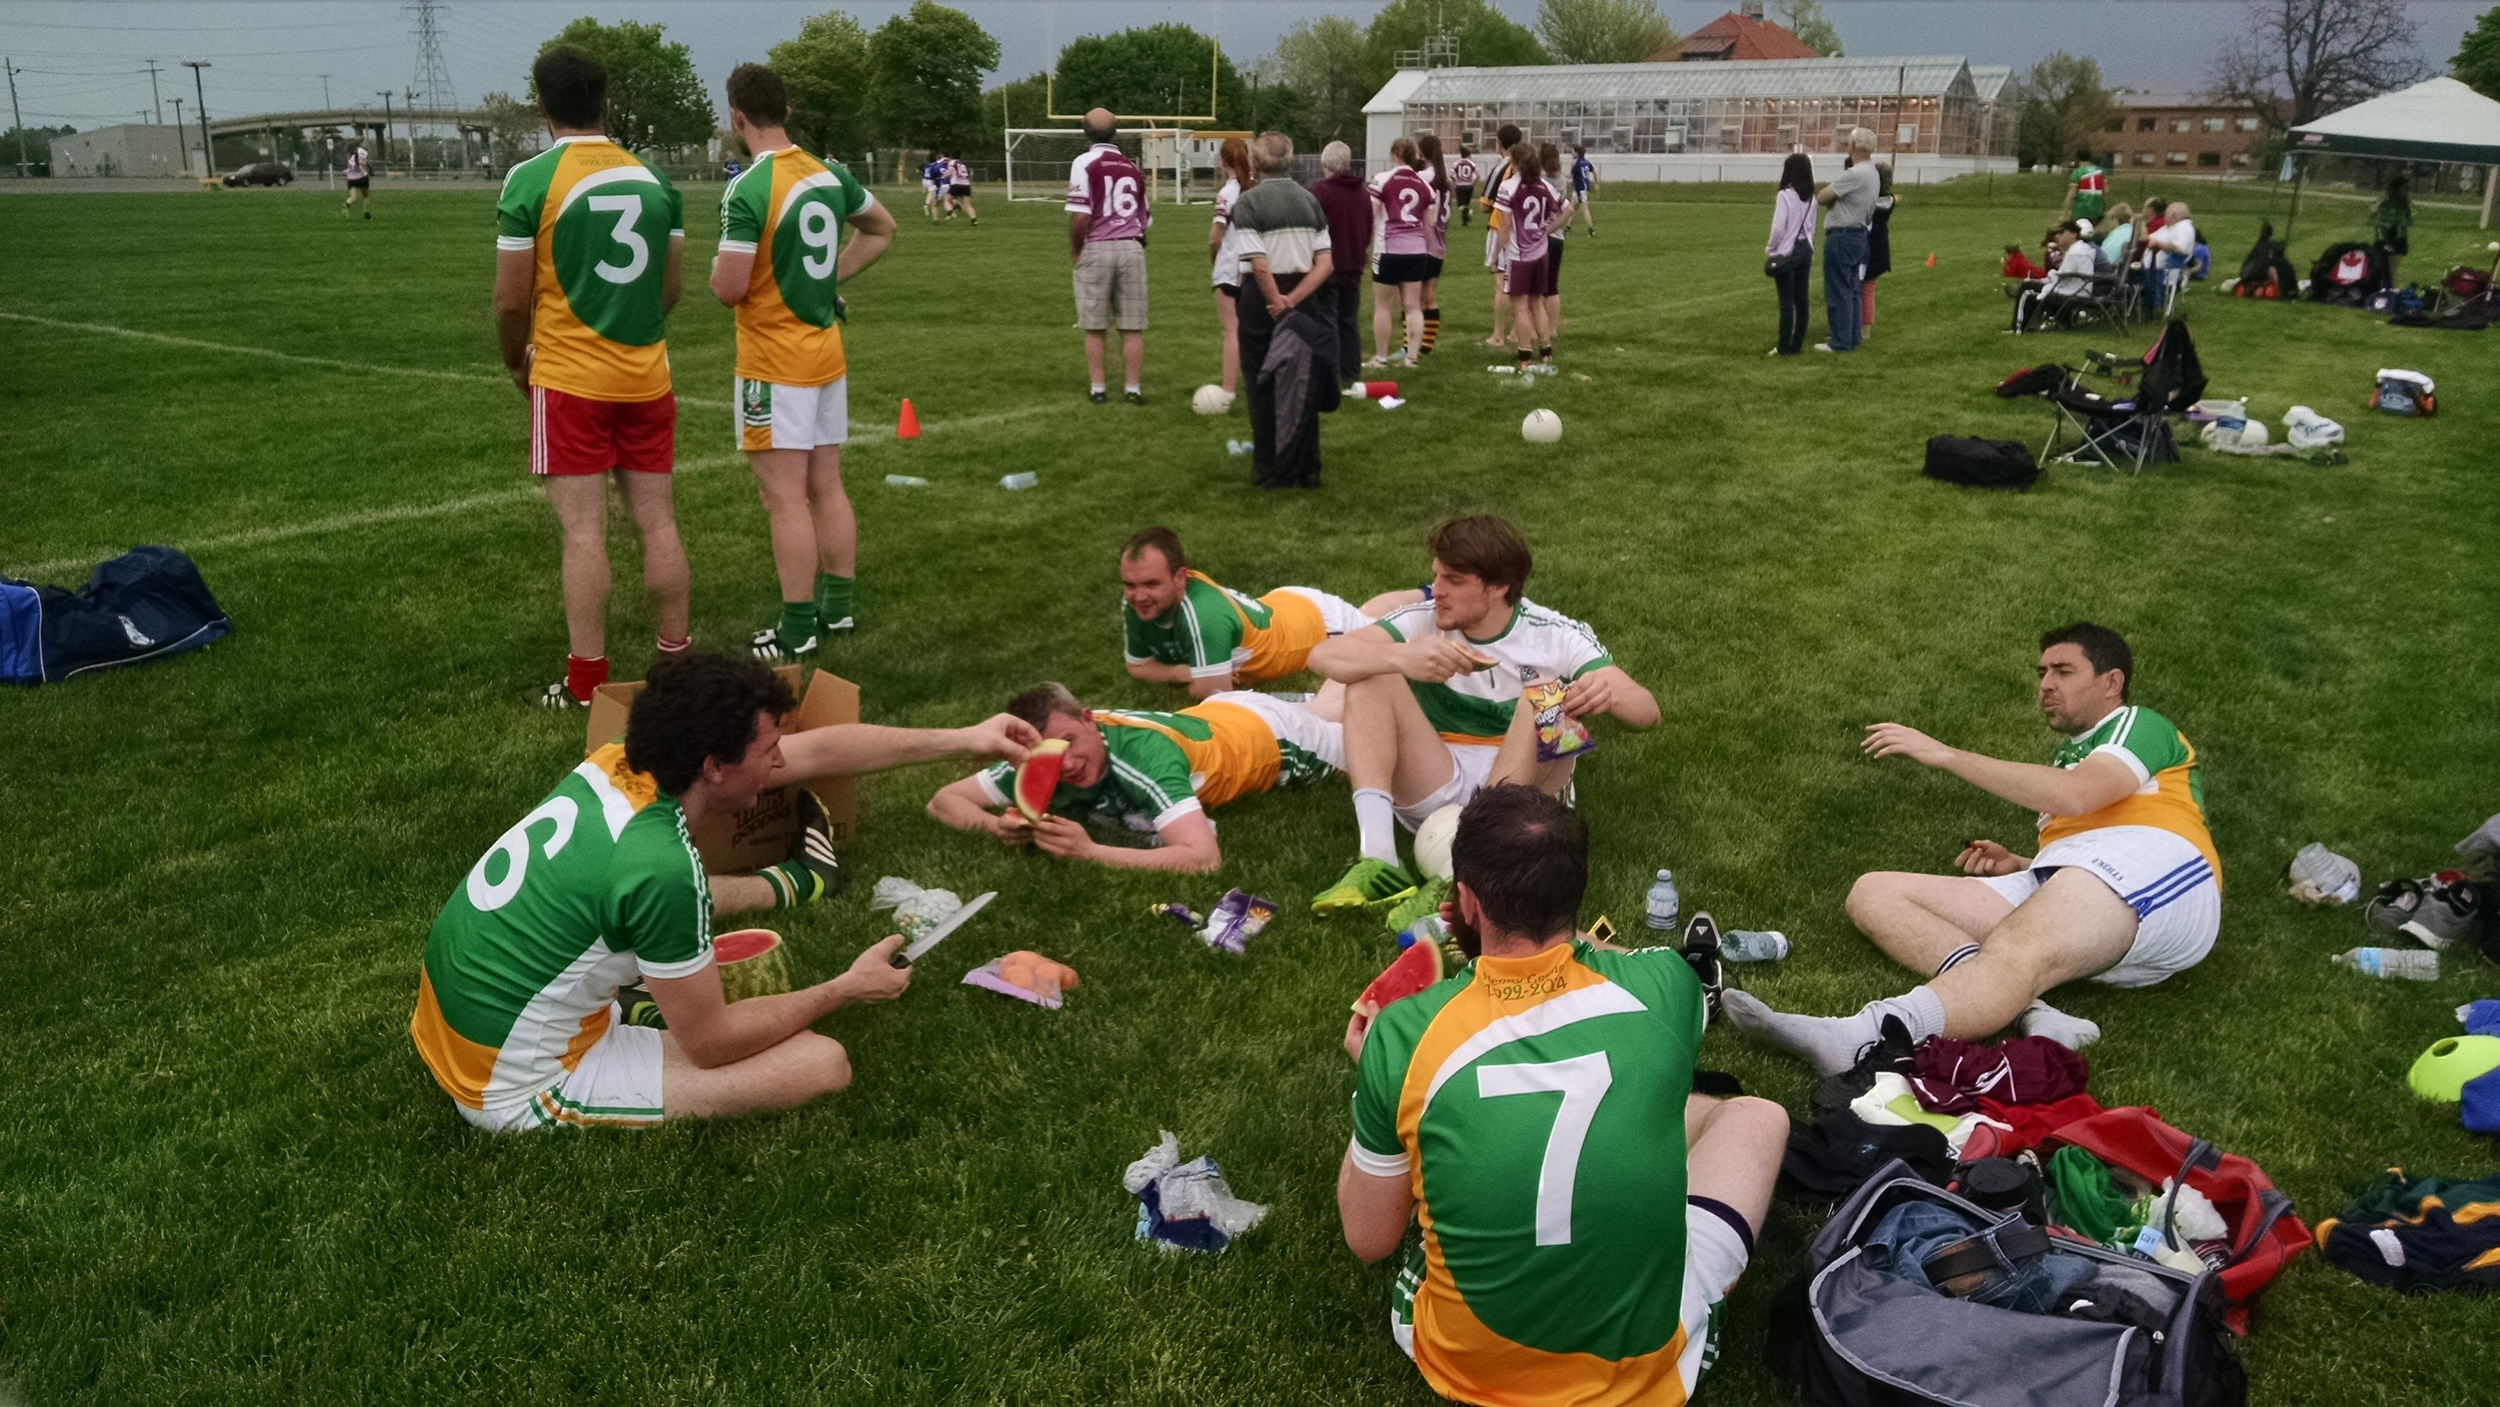 Toronto Gaels Gaelic Football Club - Montreal 9-a-side Tournament May 16th 2015 - 1.jpg